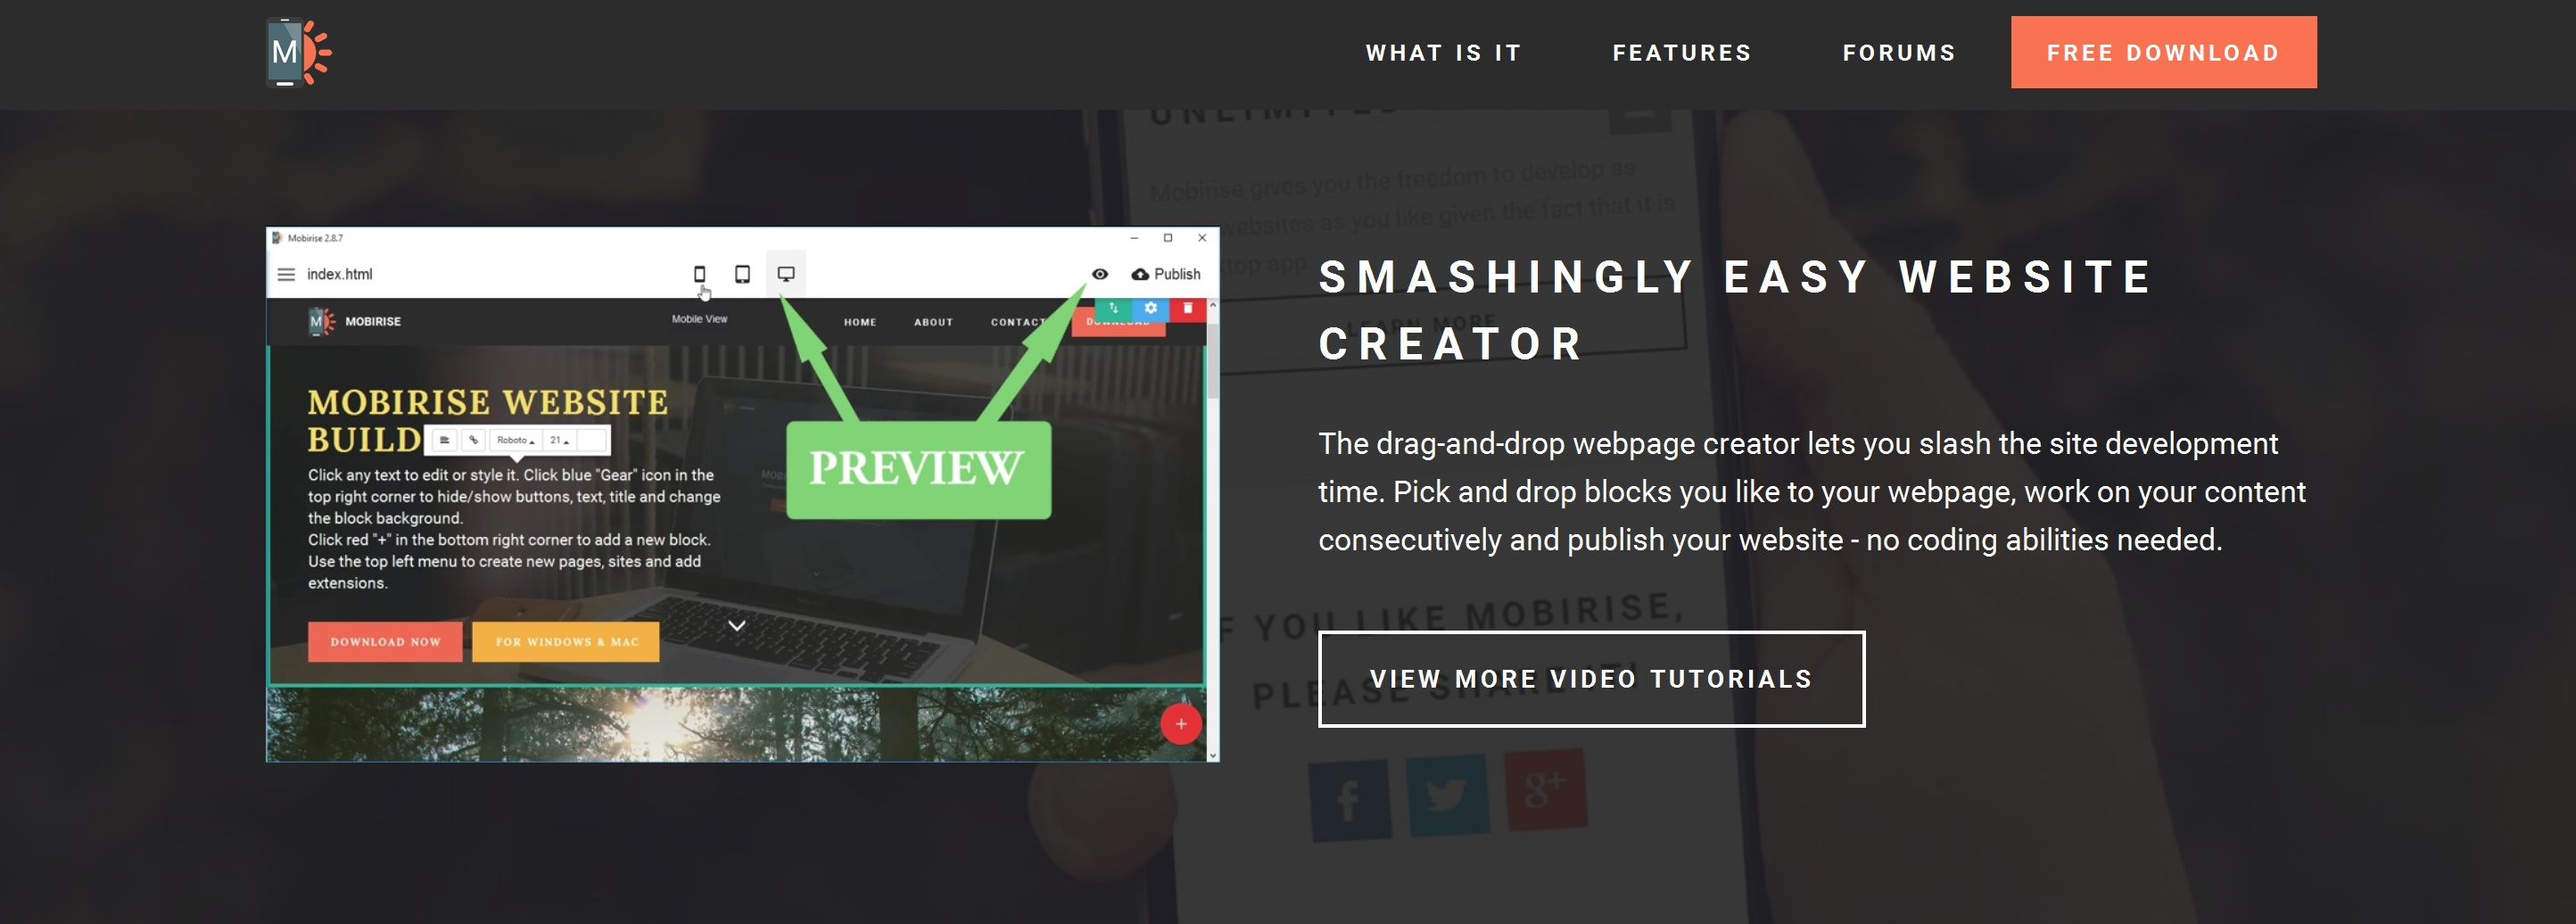 Mobile Easy Website Creator Review